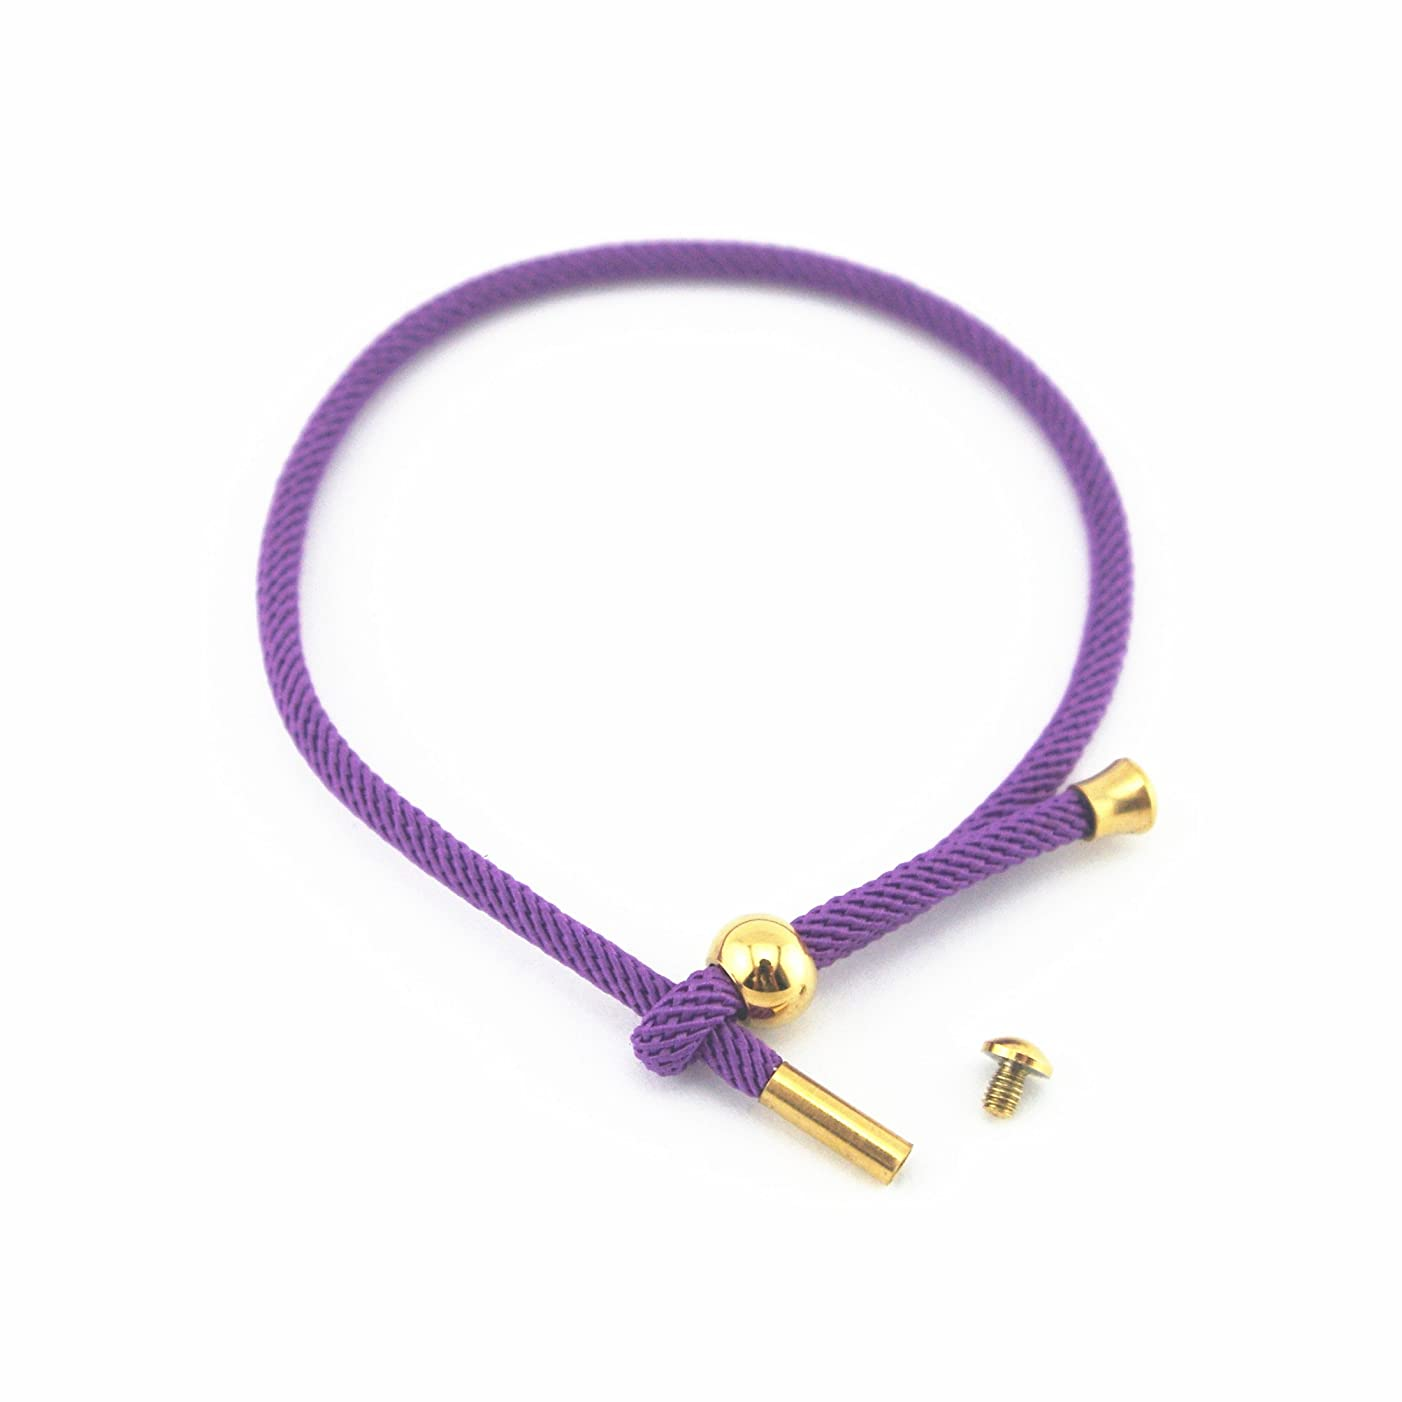 Glory Qin Adjustable Hand Rope Knitted Rope Hand Chain Stainless Steel Buckle Bracelet DIY Hand Rope (Purple)